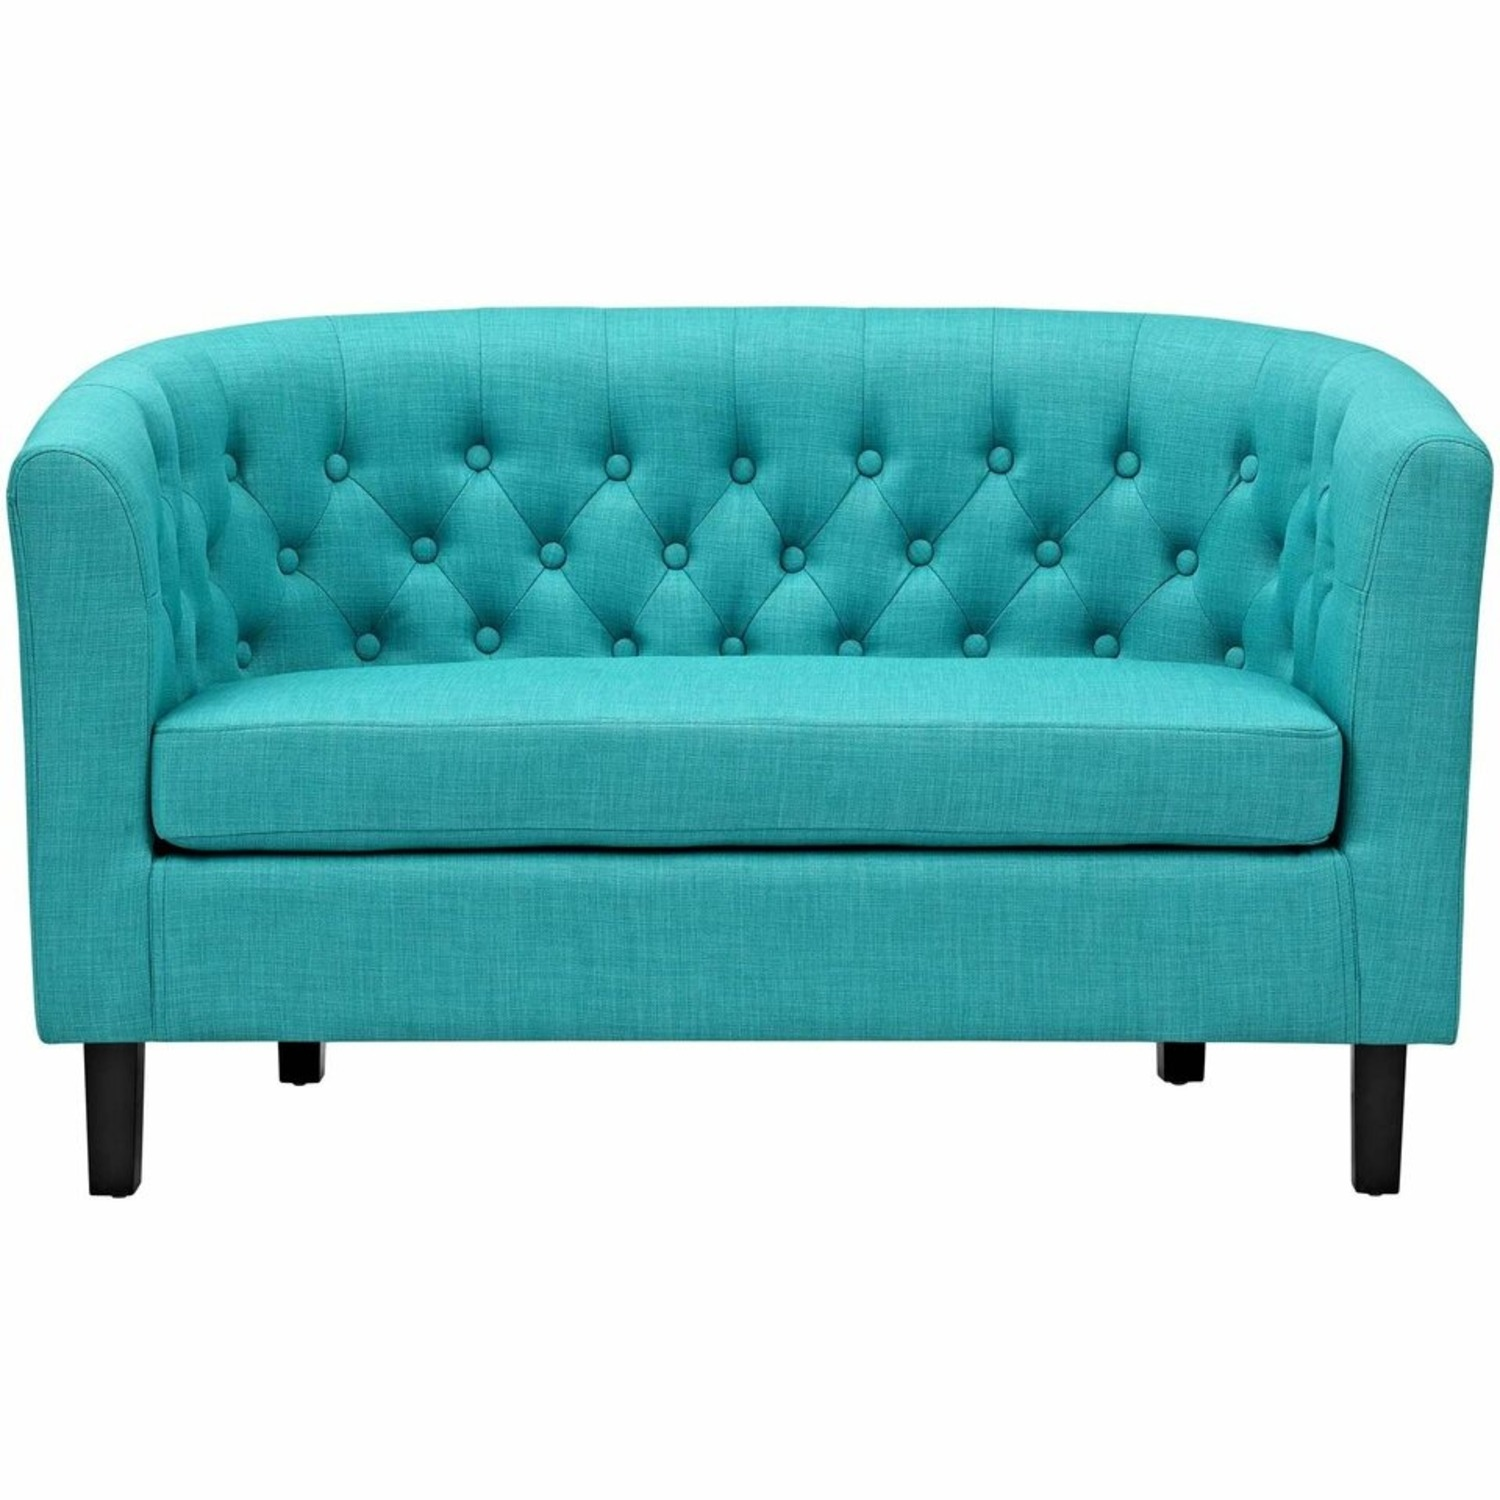 Modern Loveseat In Pure Water Fabric Upholstery - image-1